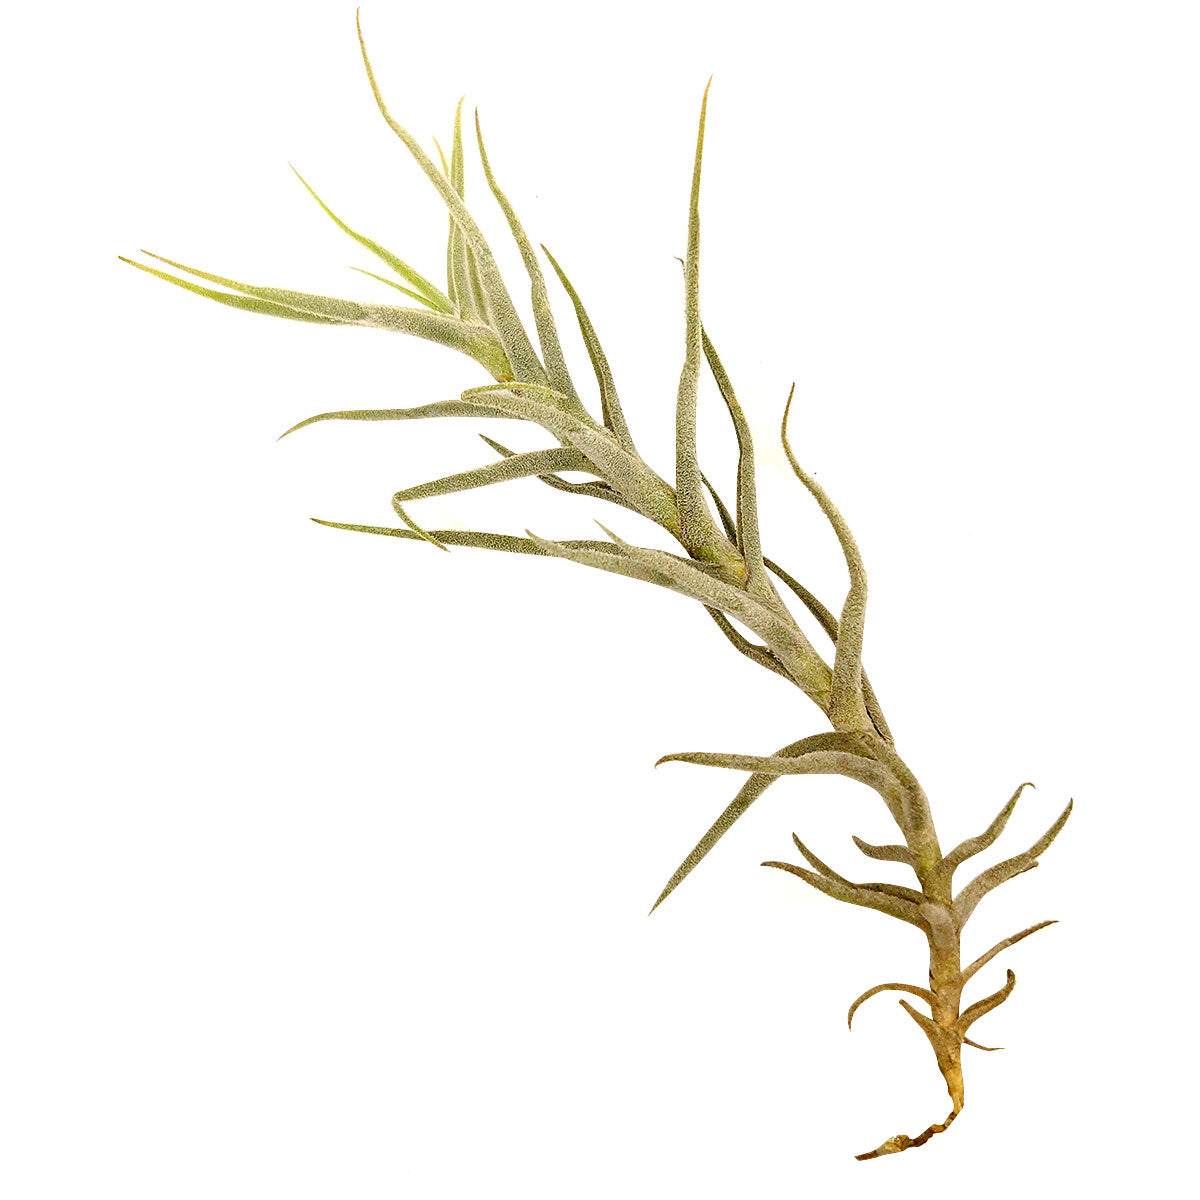 Tillandsia Paleacea air plant for sale, unique gift decor ideas, air plant subscription delivery monthly, Tillandsia Paleacea with air plant care guide, rare air plant